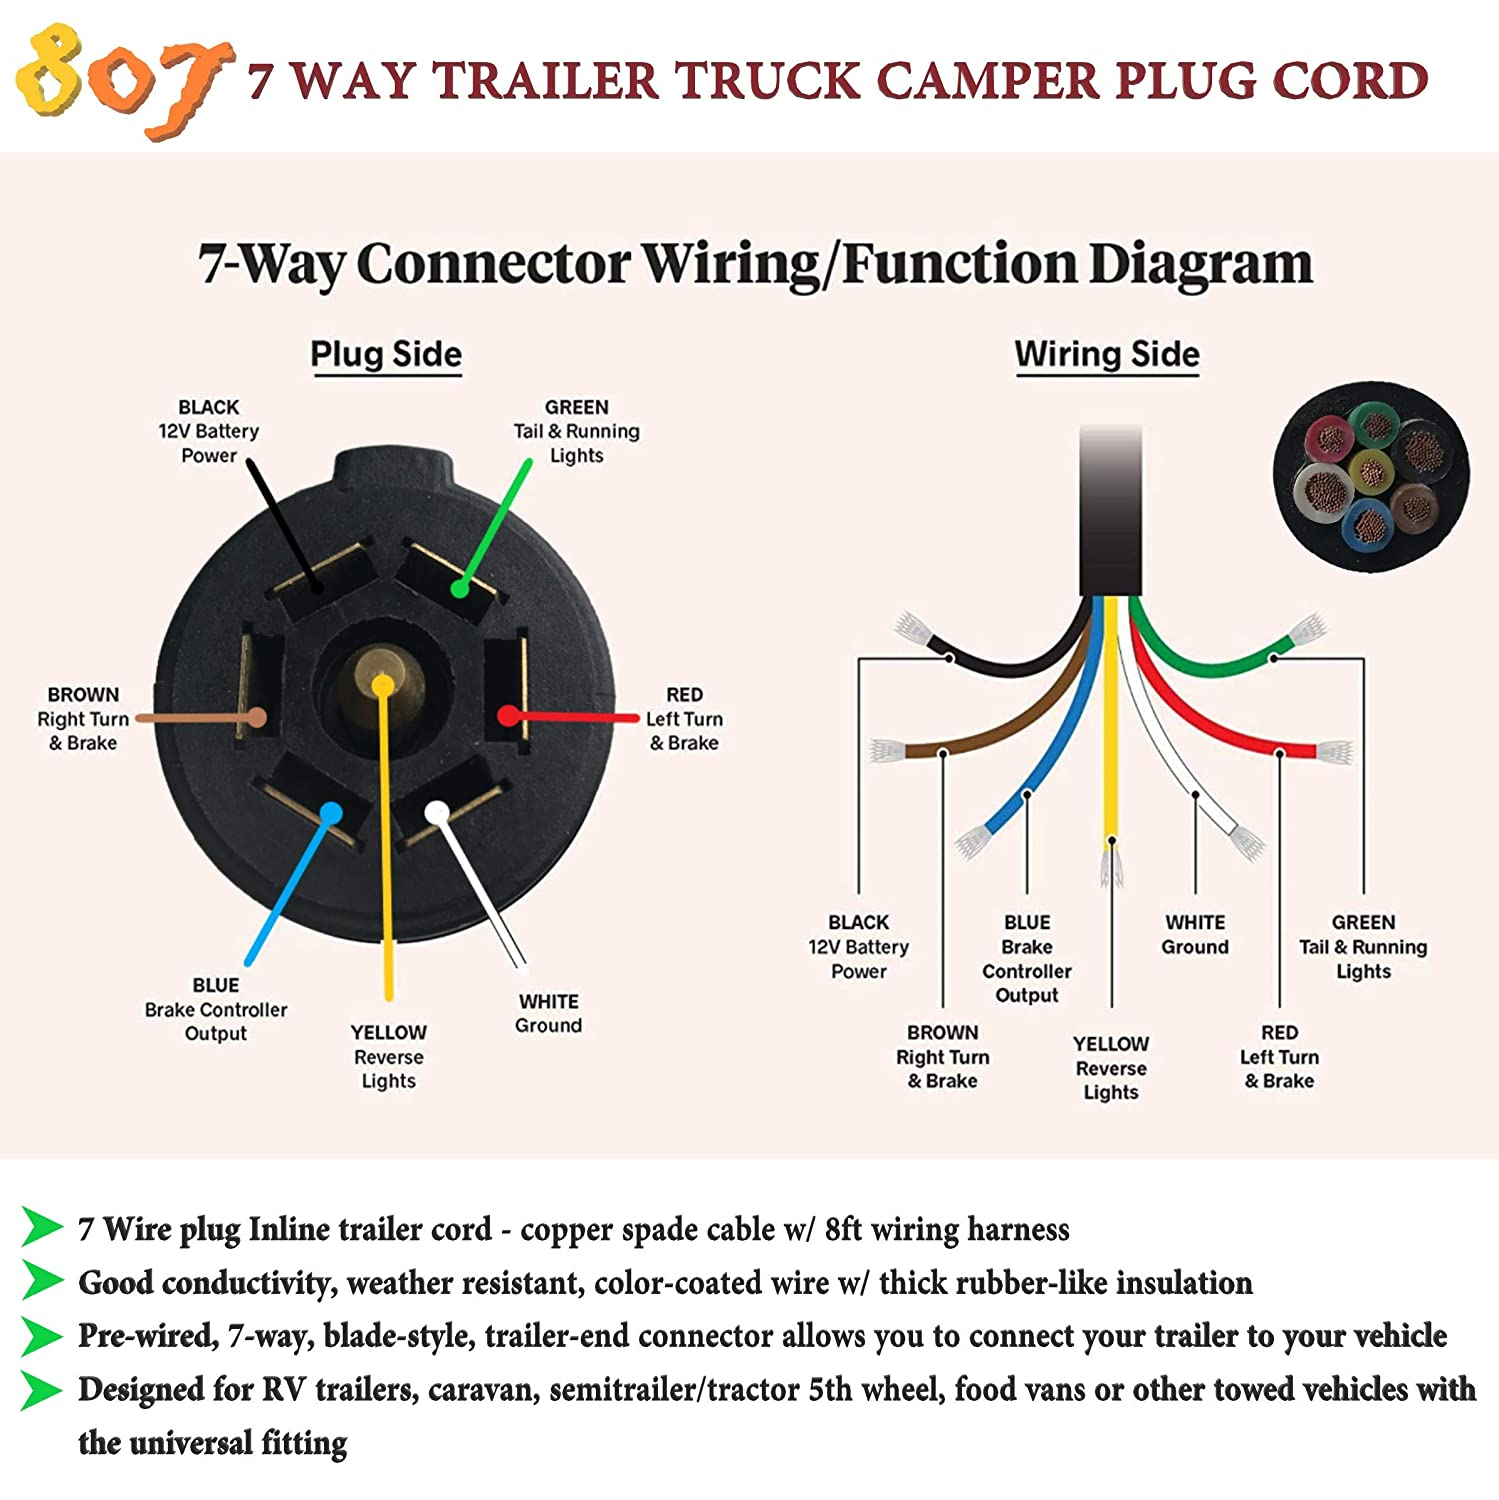 Wiring Diagram For Trailer Plug On Car from images-na.ssl-images-amazon.com